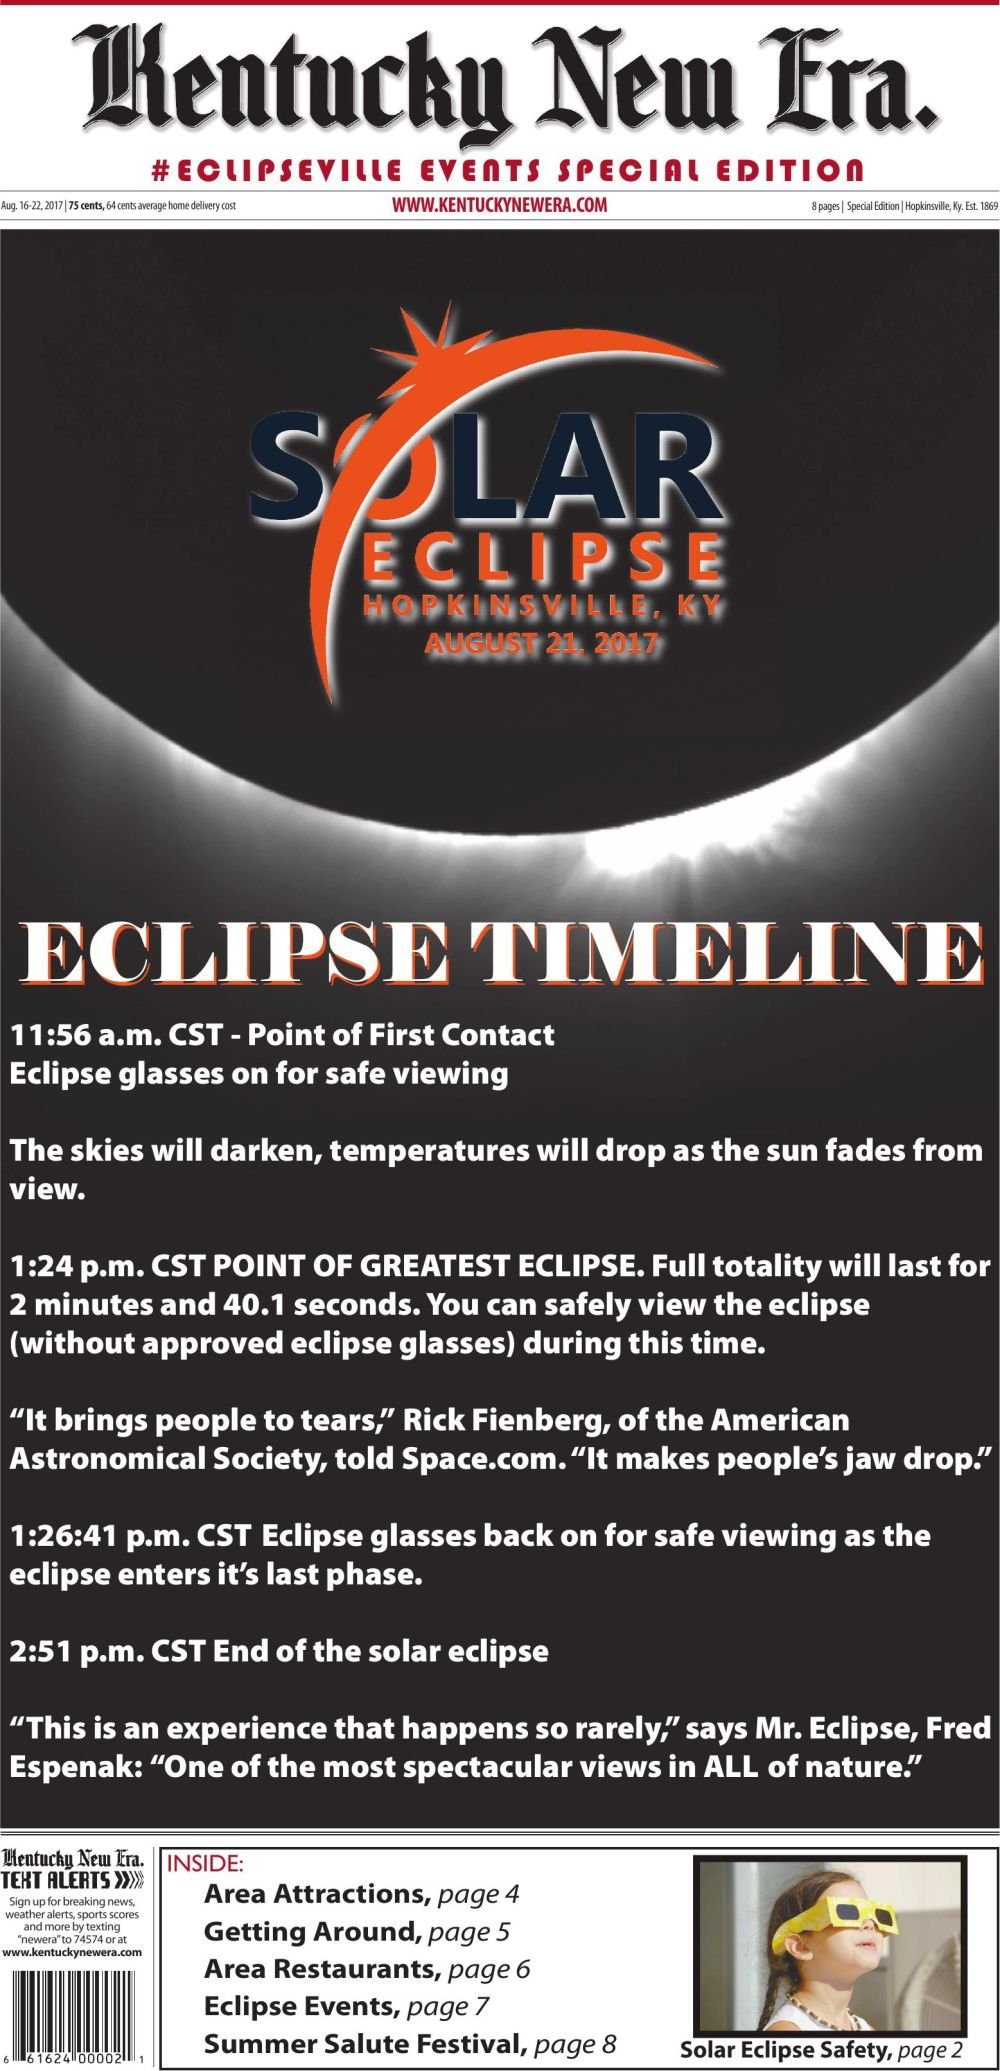 #ECLIPSEVILLE EVENTS SPECIAL EDITION